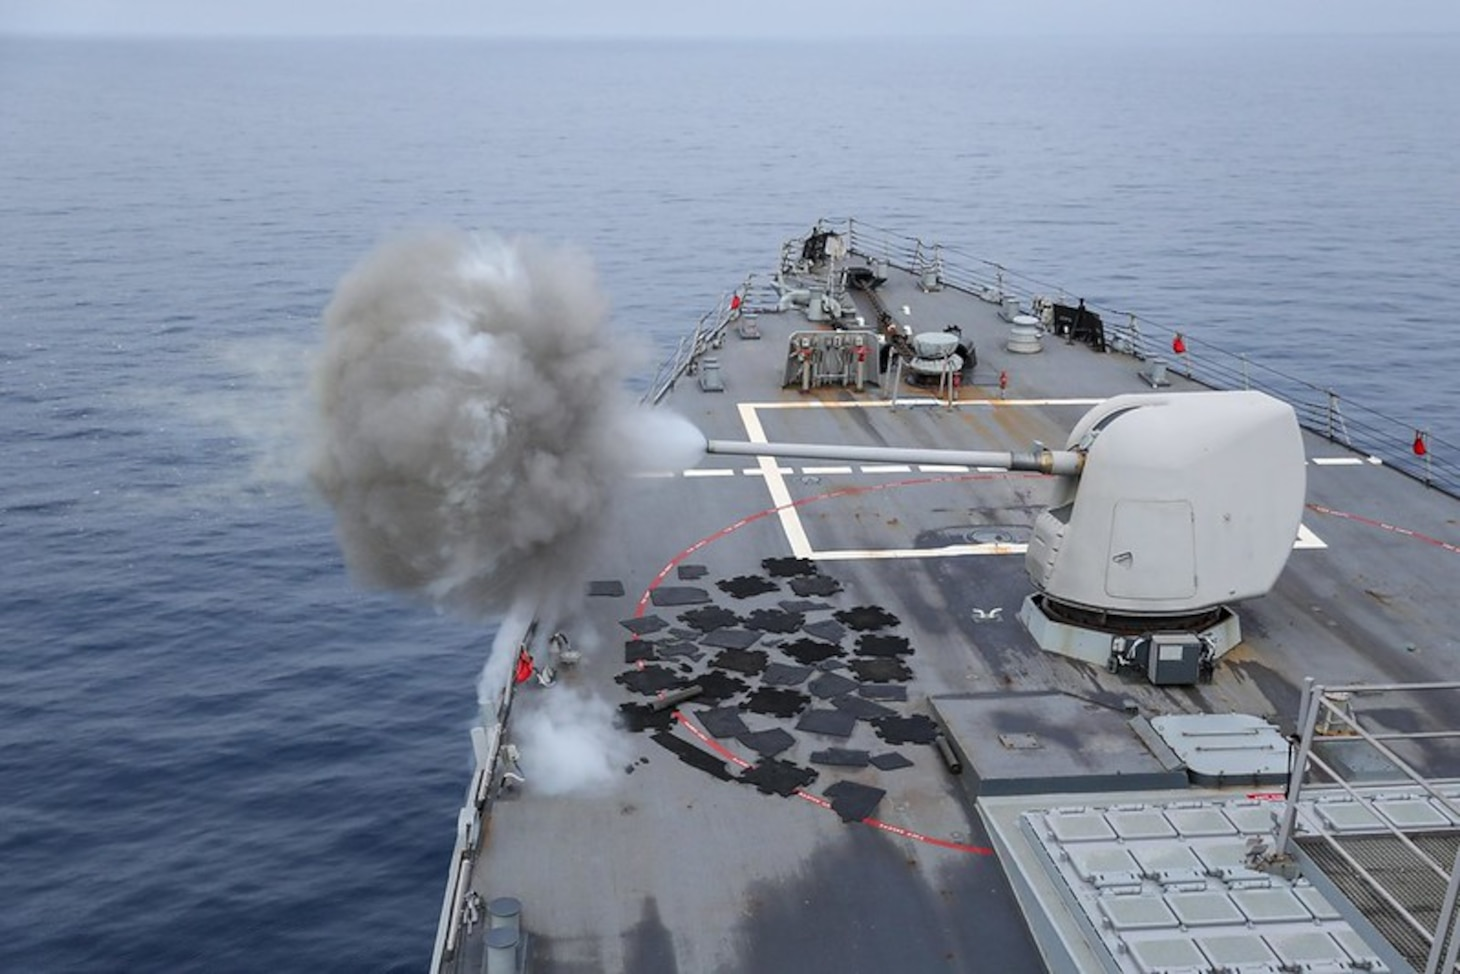 The Arleigh Burke-class guided-missile destroyer USS Ross (DDG 71) fires its Mark 45 5-inch gun while underway in the Mediterranean Sea, July 22, 2021.